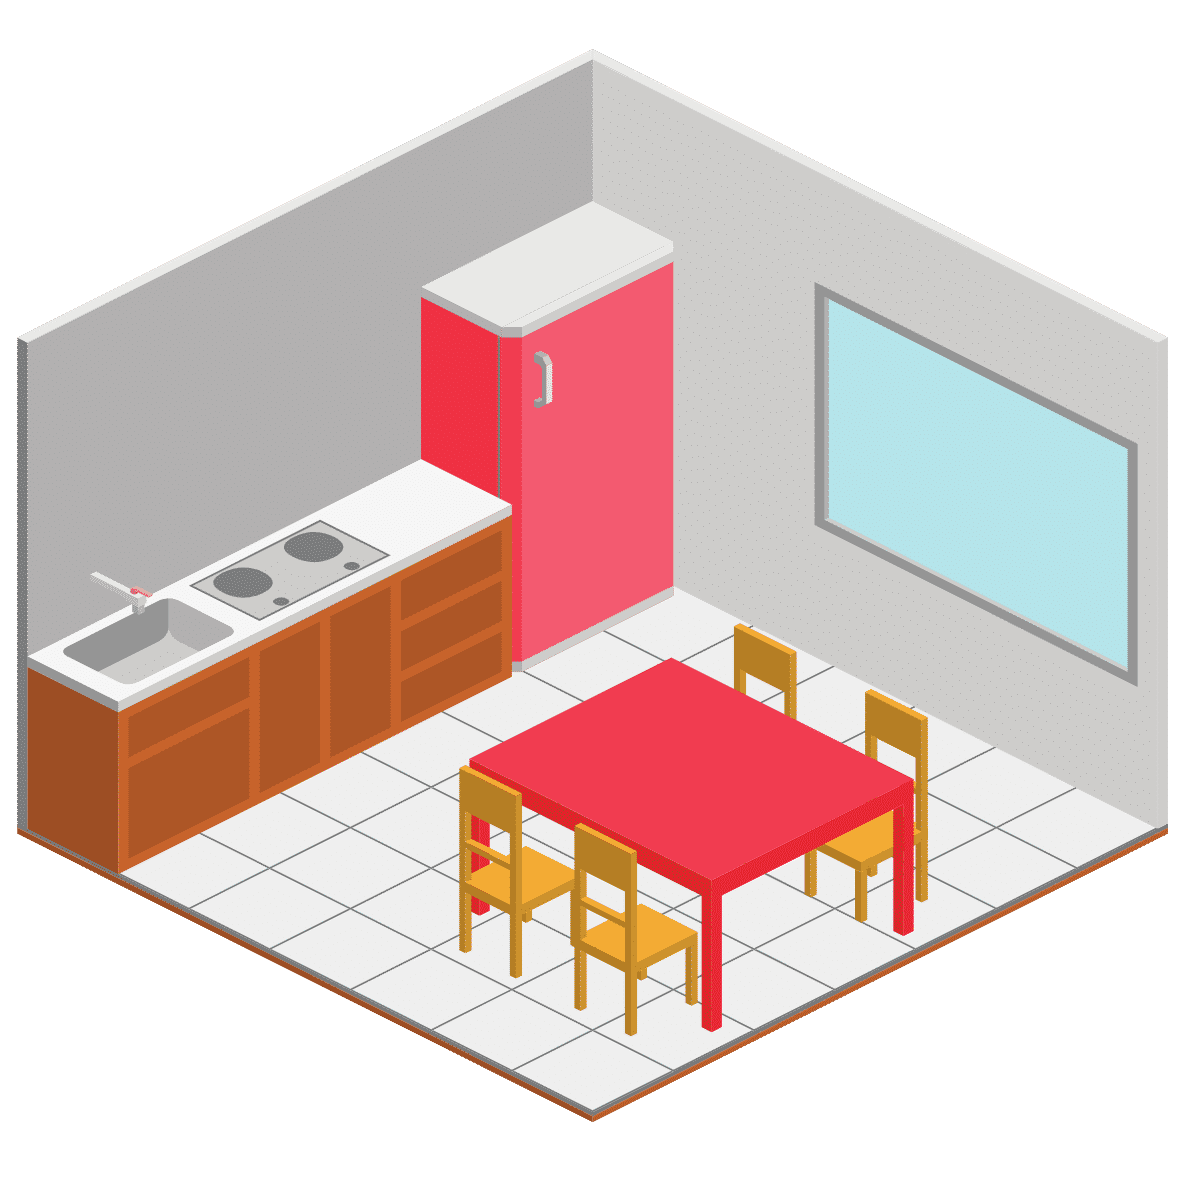 a cartoon illustration of a simple kitchen with tiled floor